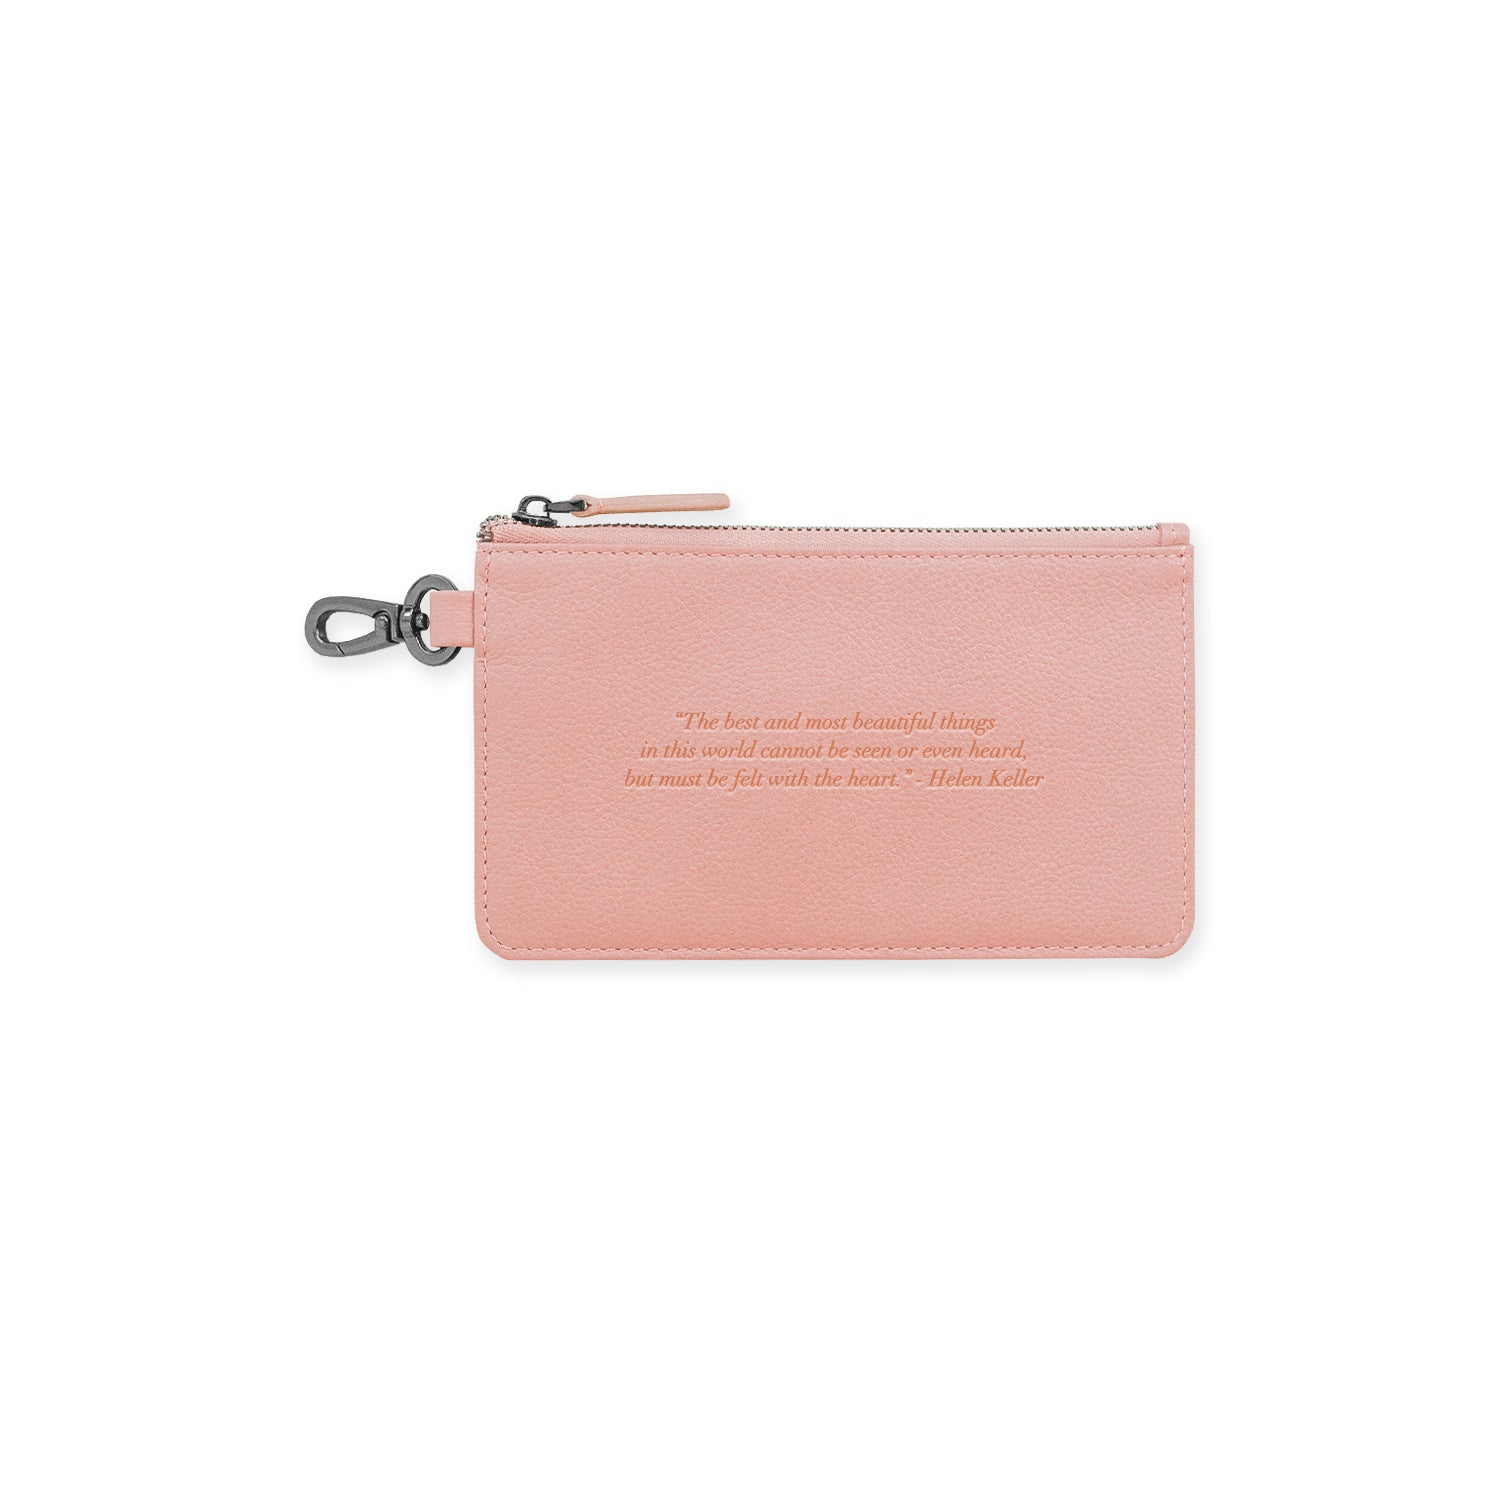 All for Love Bespoke Leather Pouch with a Personalised Quote